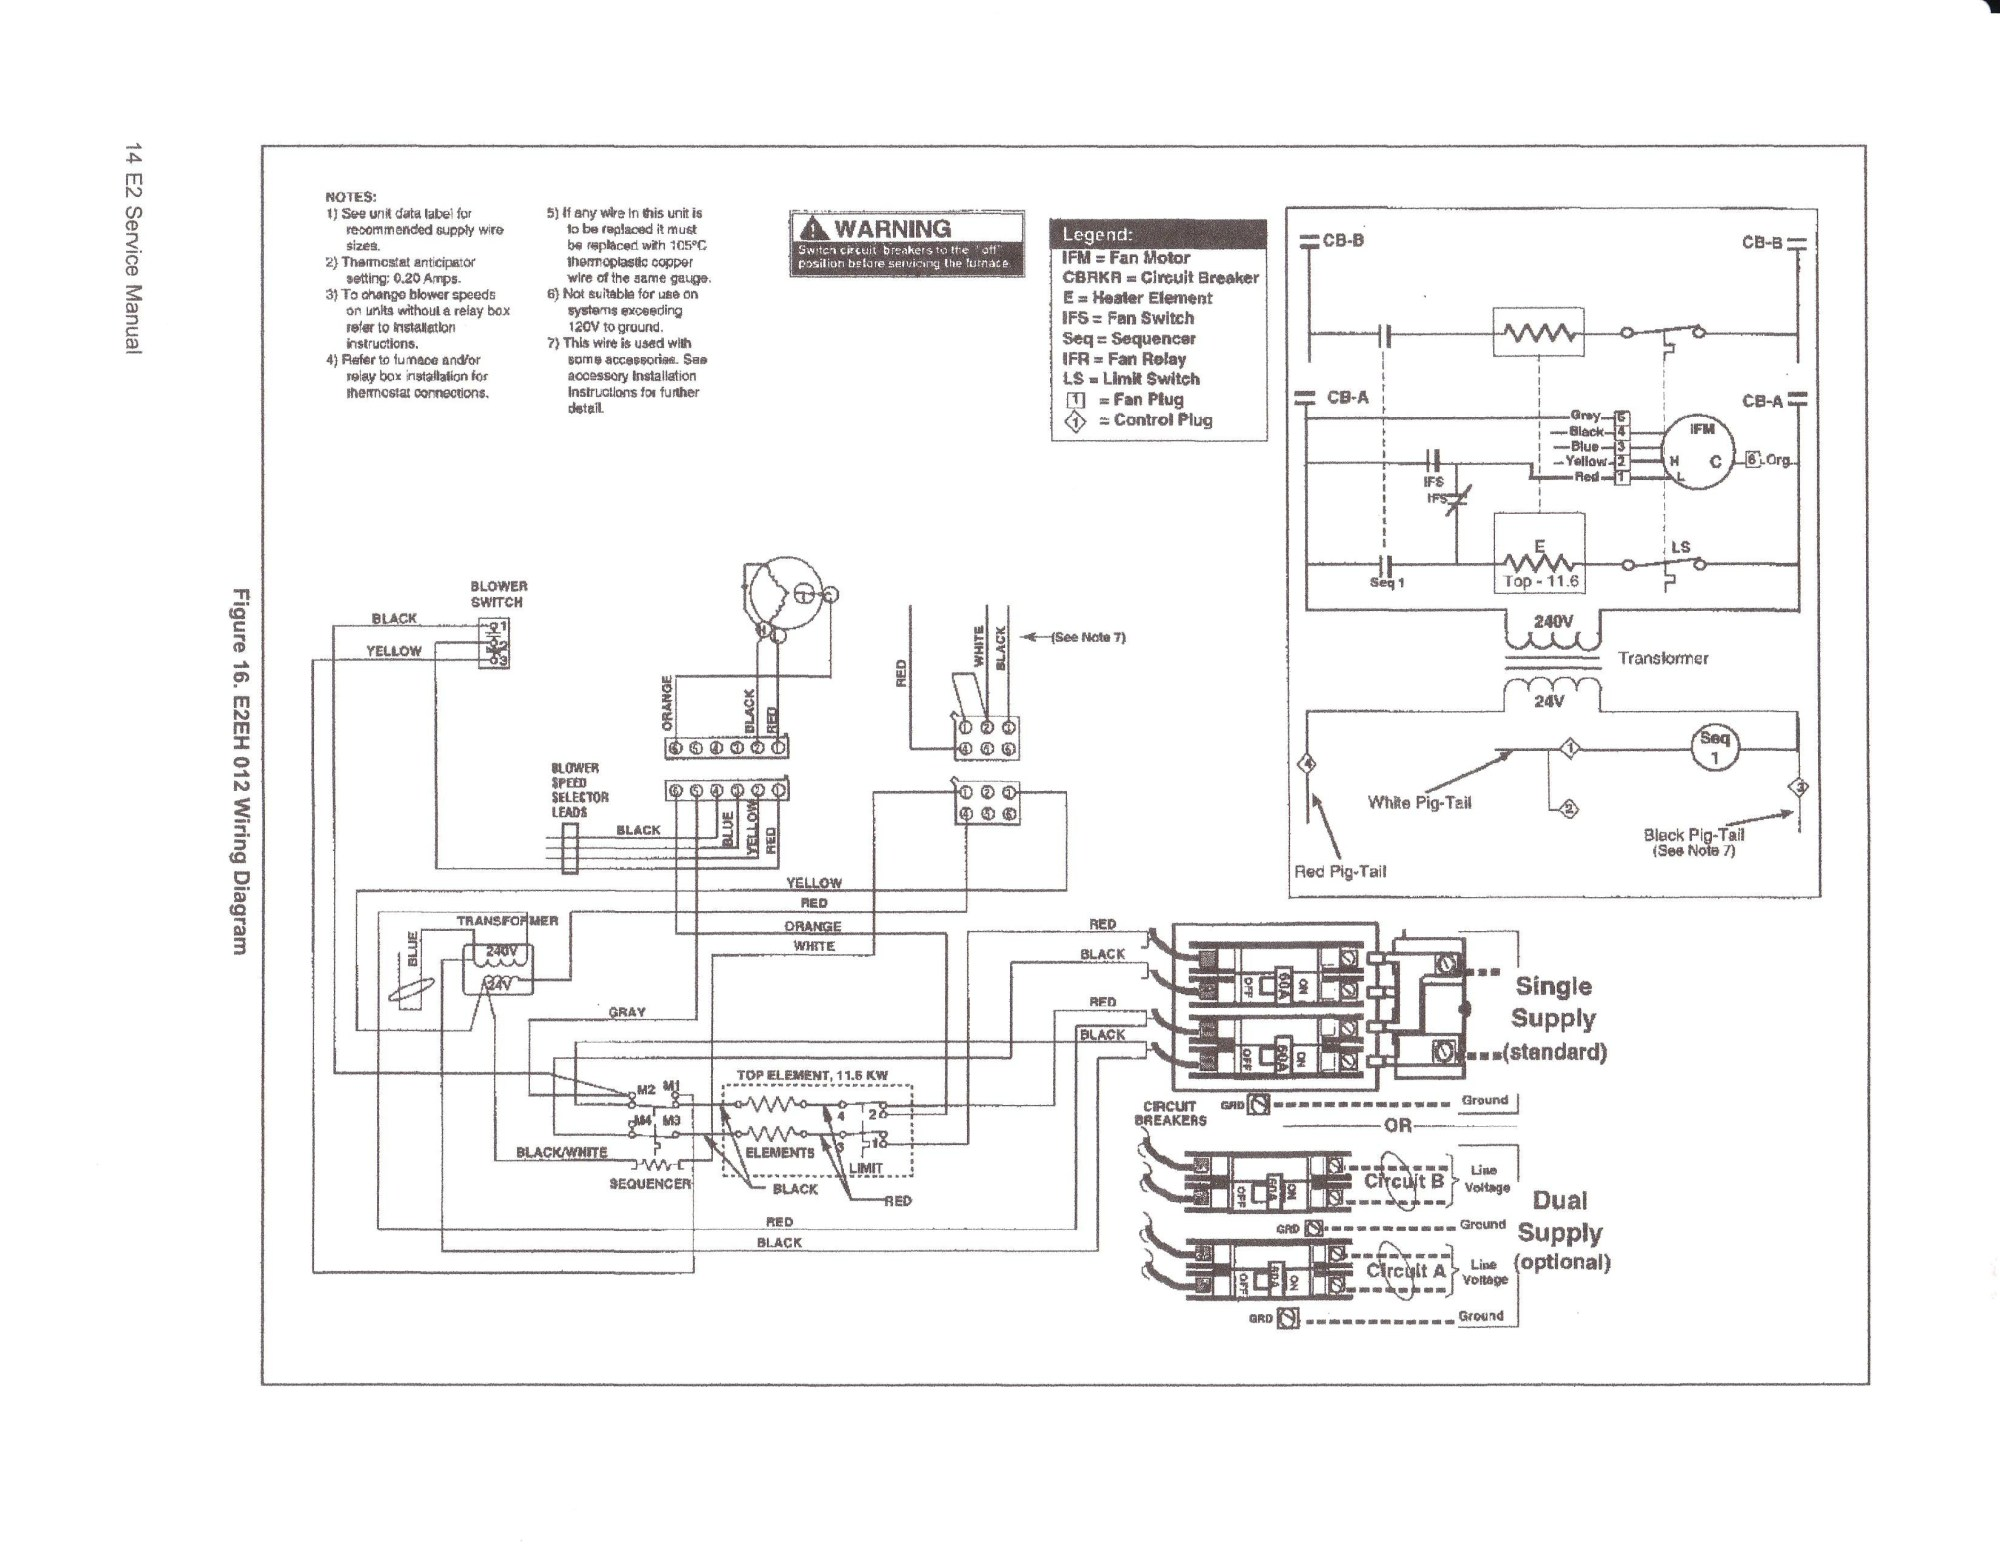 hight resolution of coleman evcon thermostat wiring diagram w140 ac wiring diagram valid coleman evcon thermostat wiring diagram